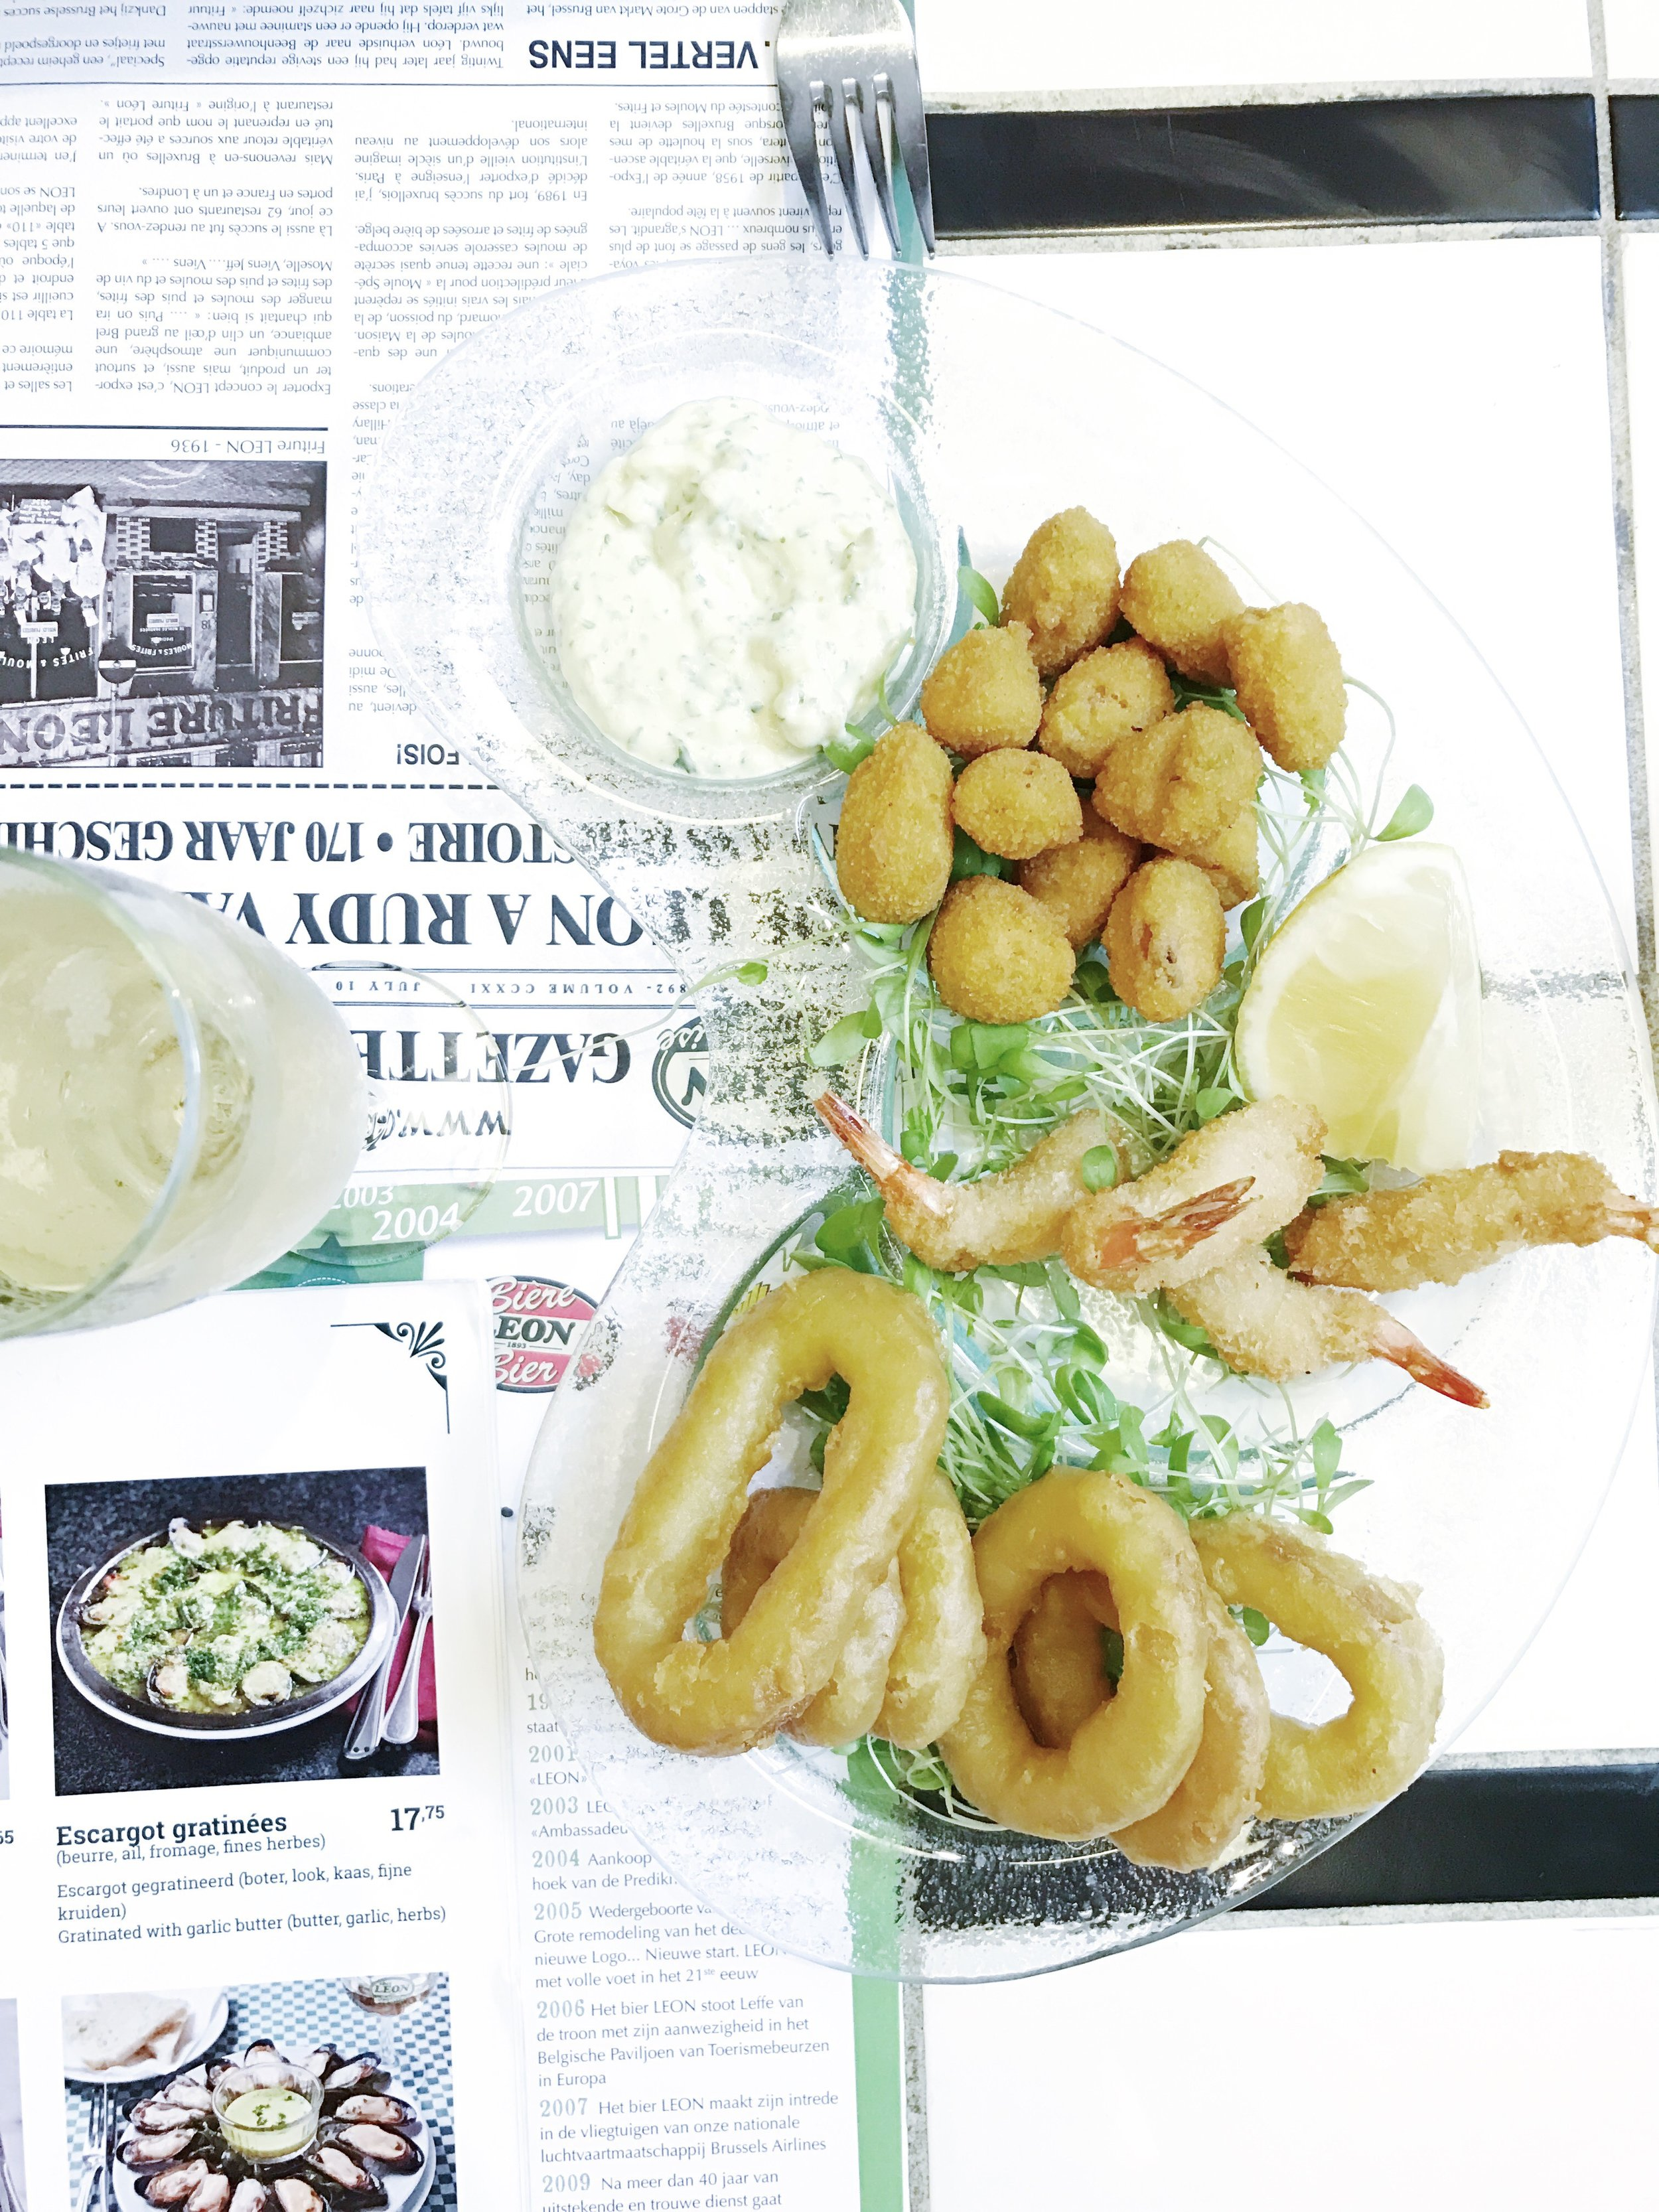 Fried appetizers, yay! From top to bottom: fried mussels, fried shrimp and fried calamari rings. Served with tartar sauce.